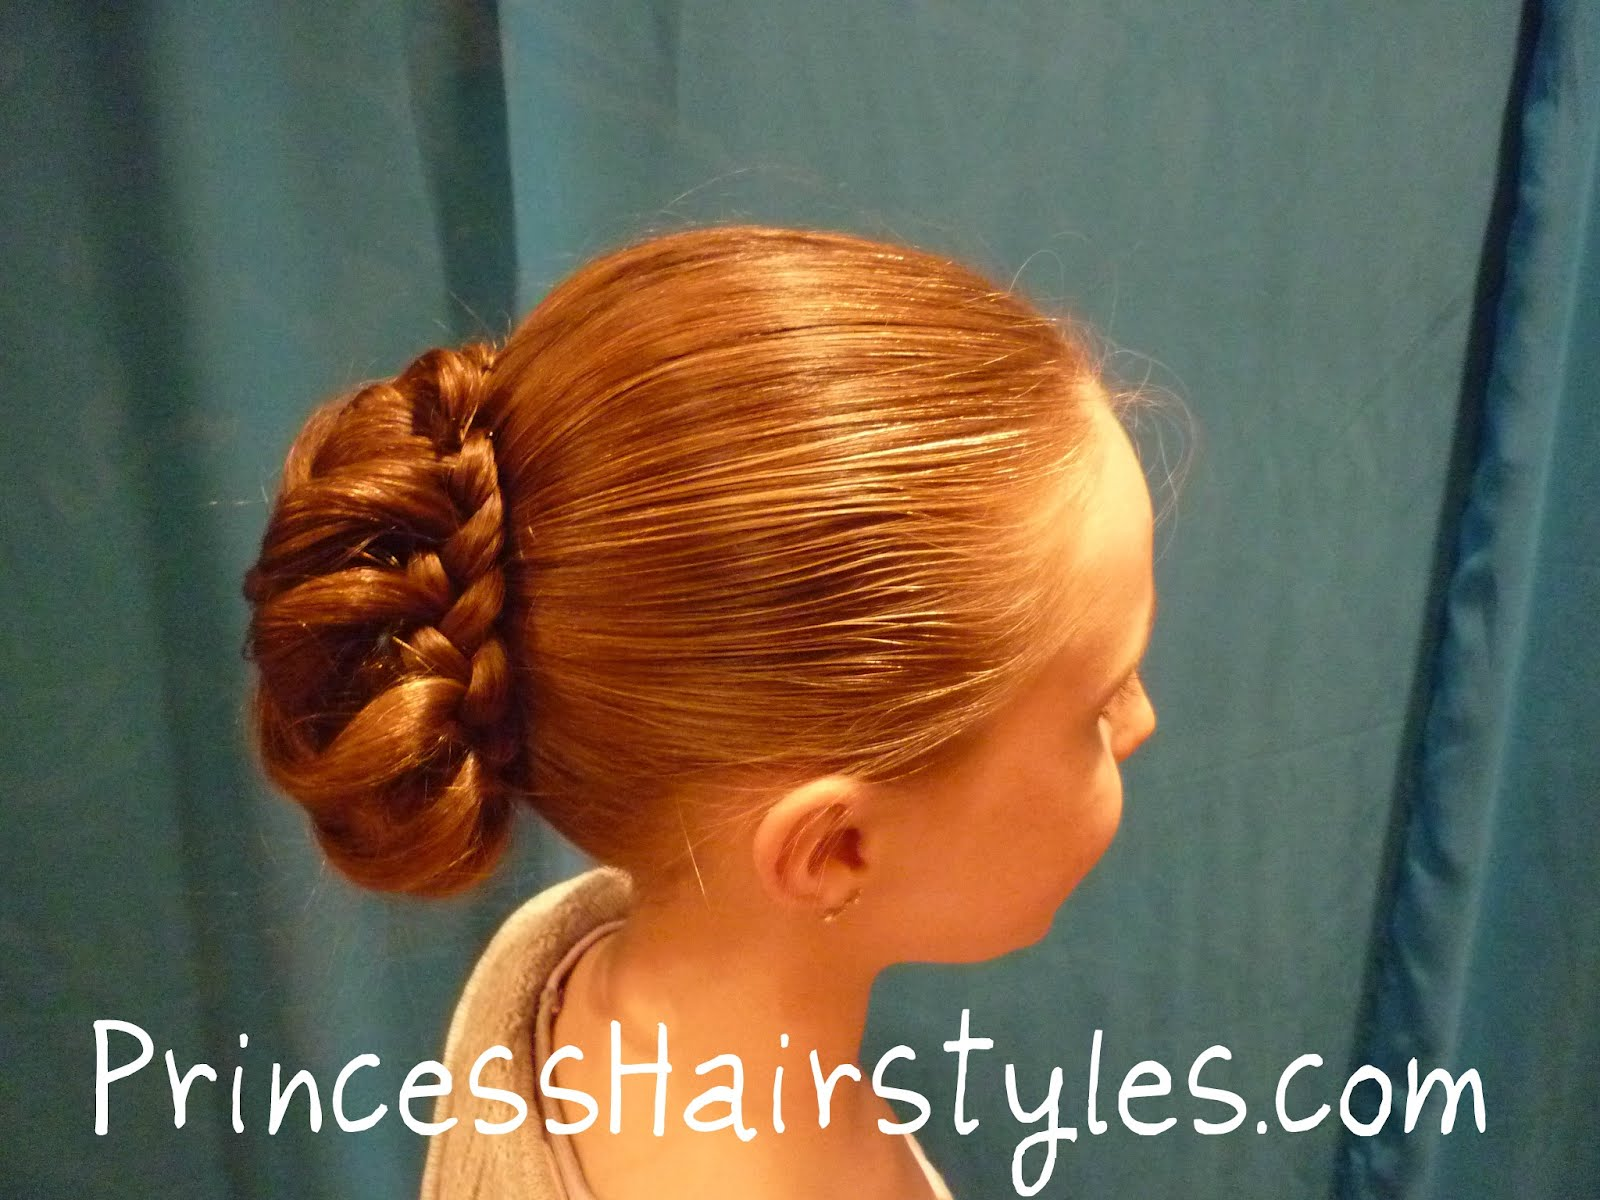 braid wrapped bun | hairstyles for girls - princess hairstyles